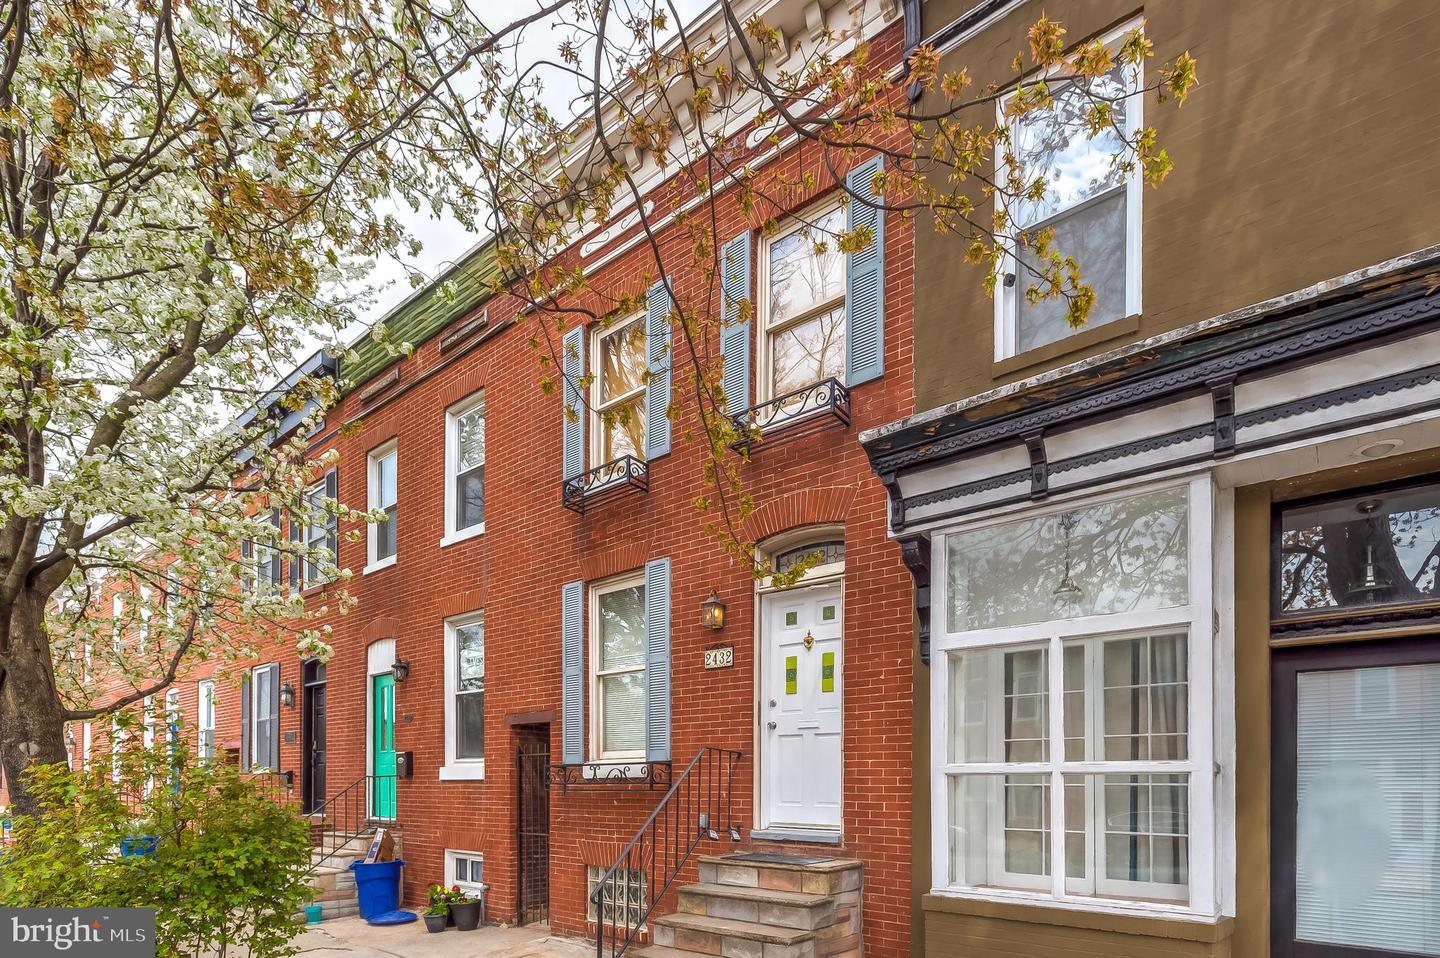 2432 Fait Avenue   - Baltimore, Maryland 21224